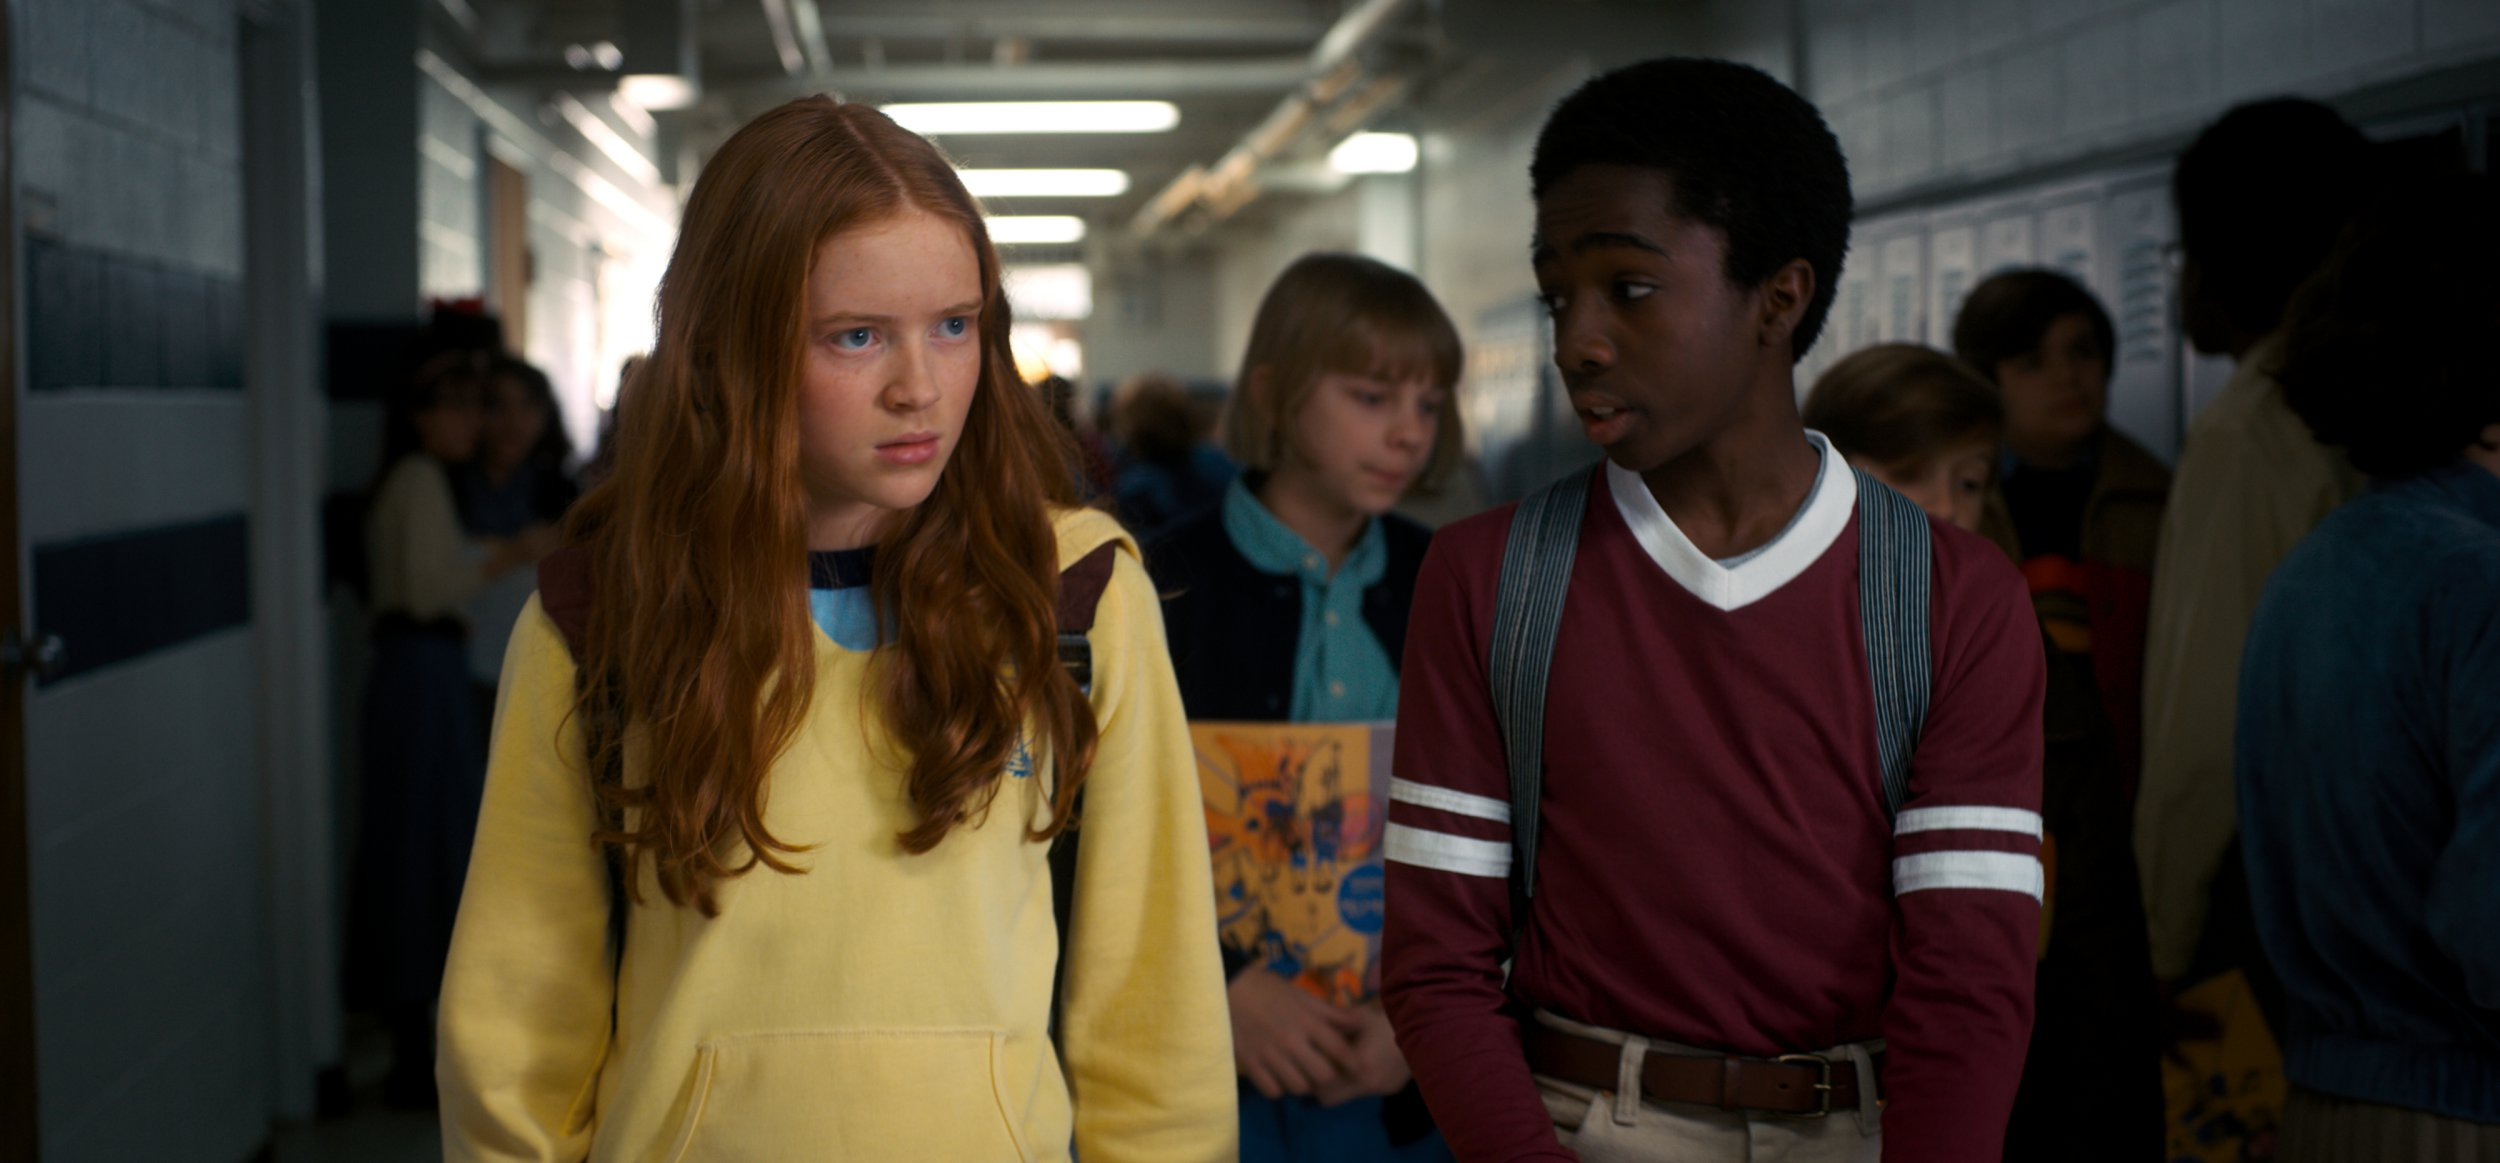 Stranger Things' Max's mysterious background before Hawkins to be revealed in prequel book